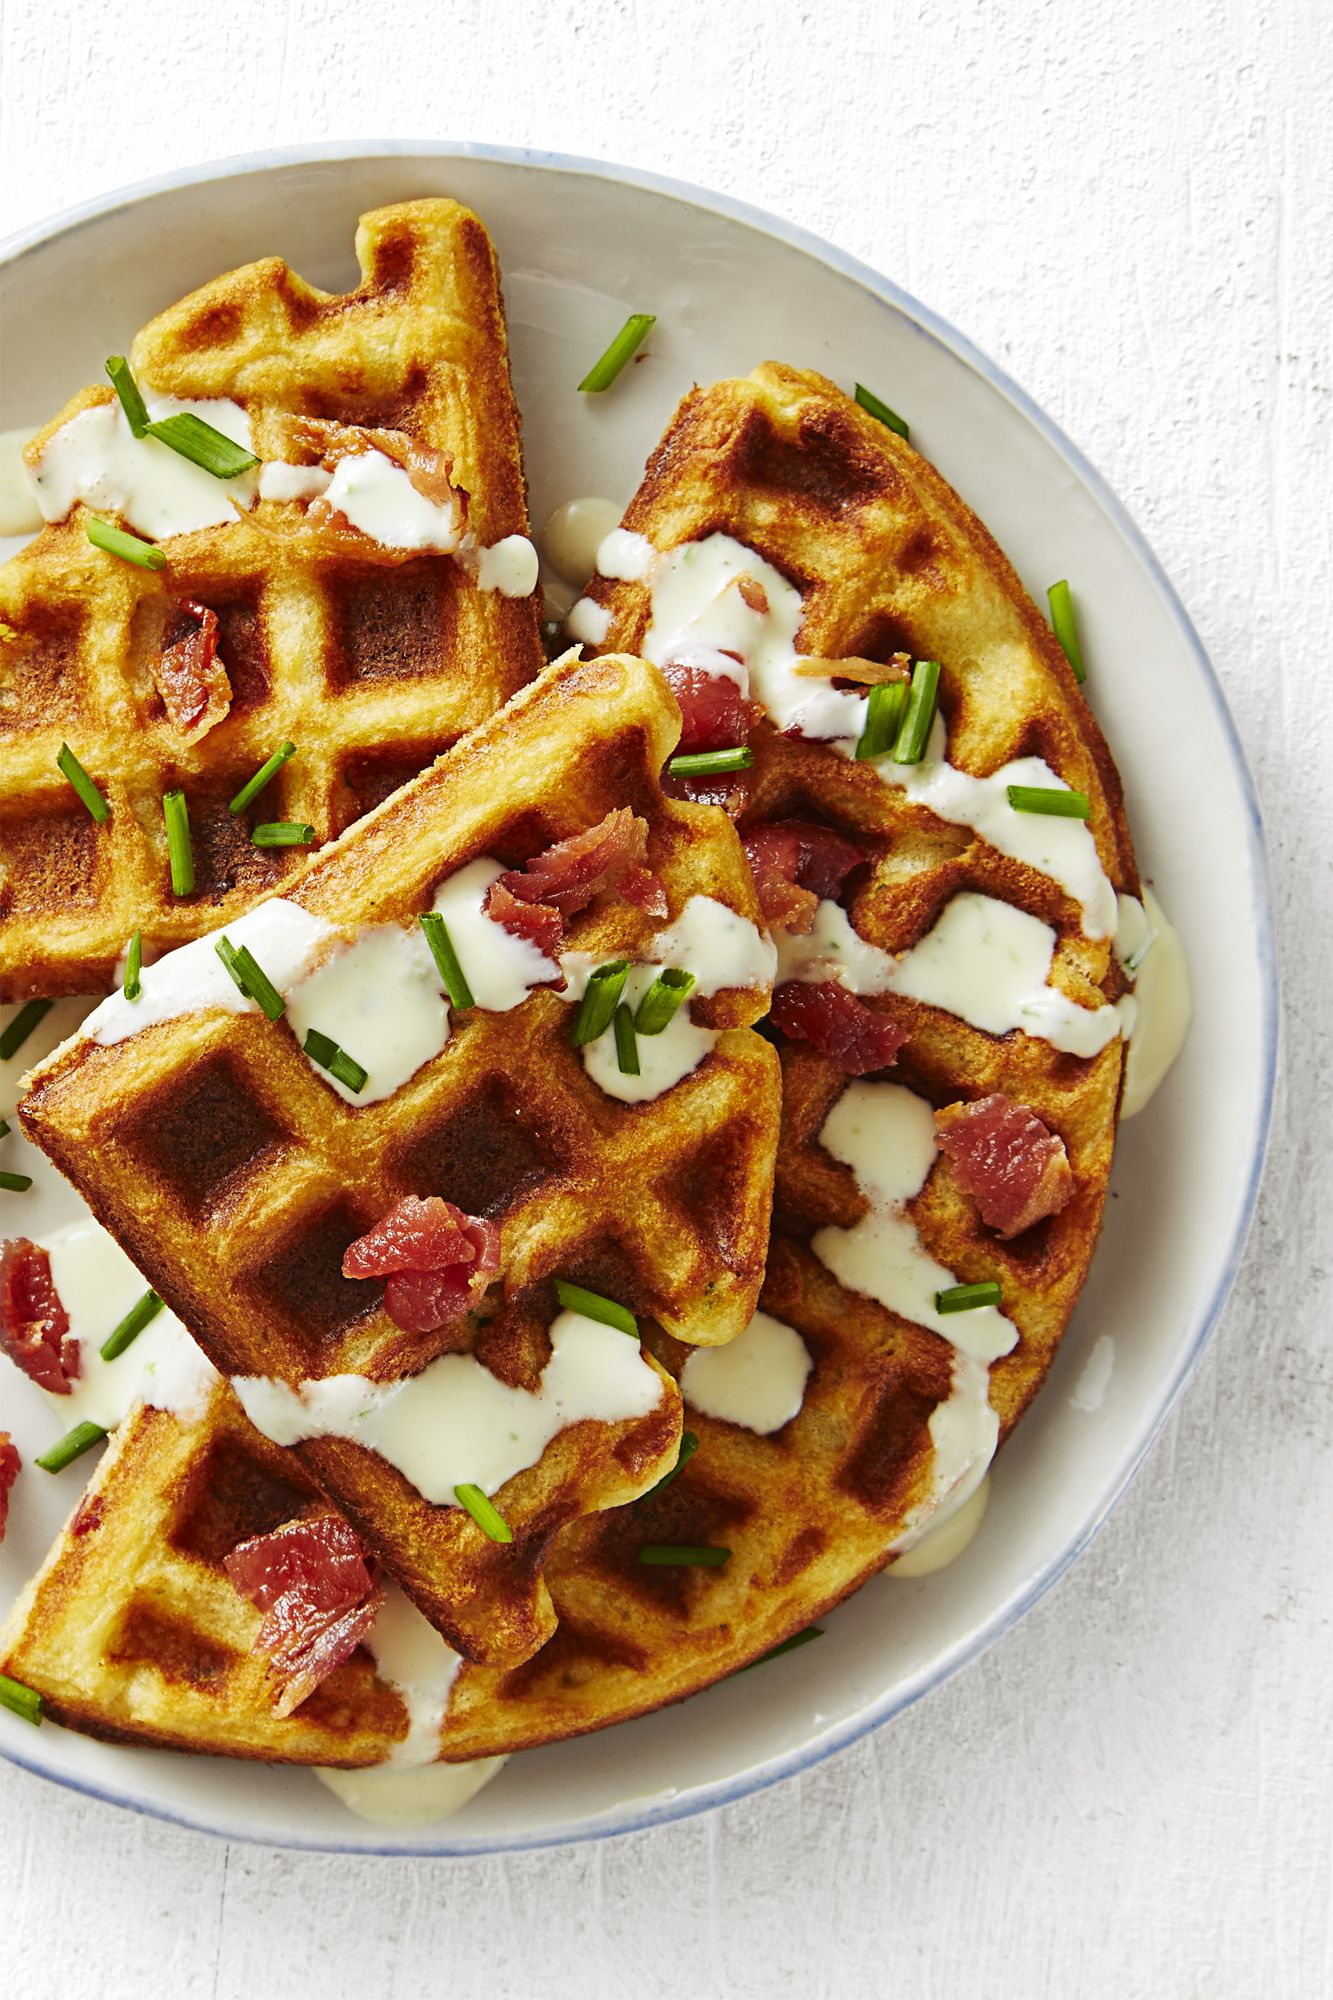 savory bacon and chive waffles